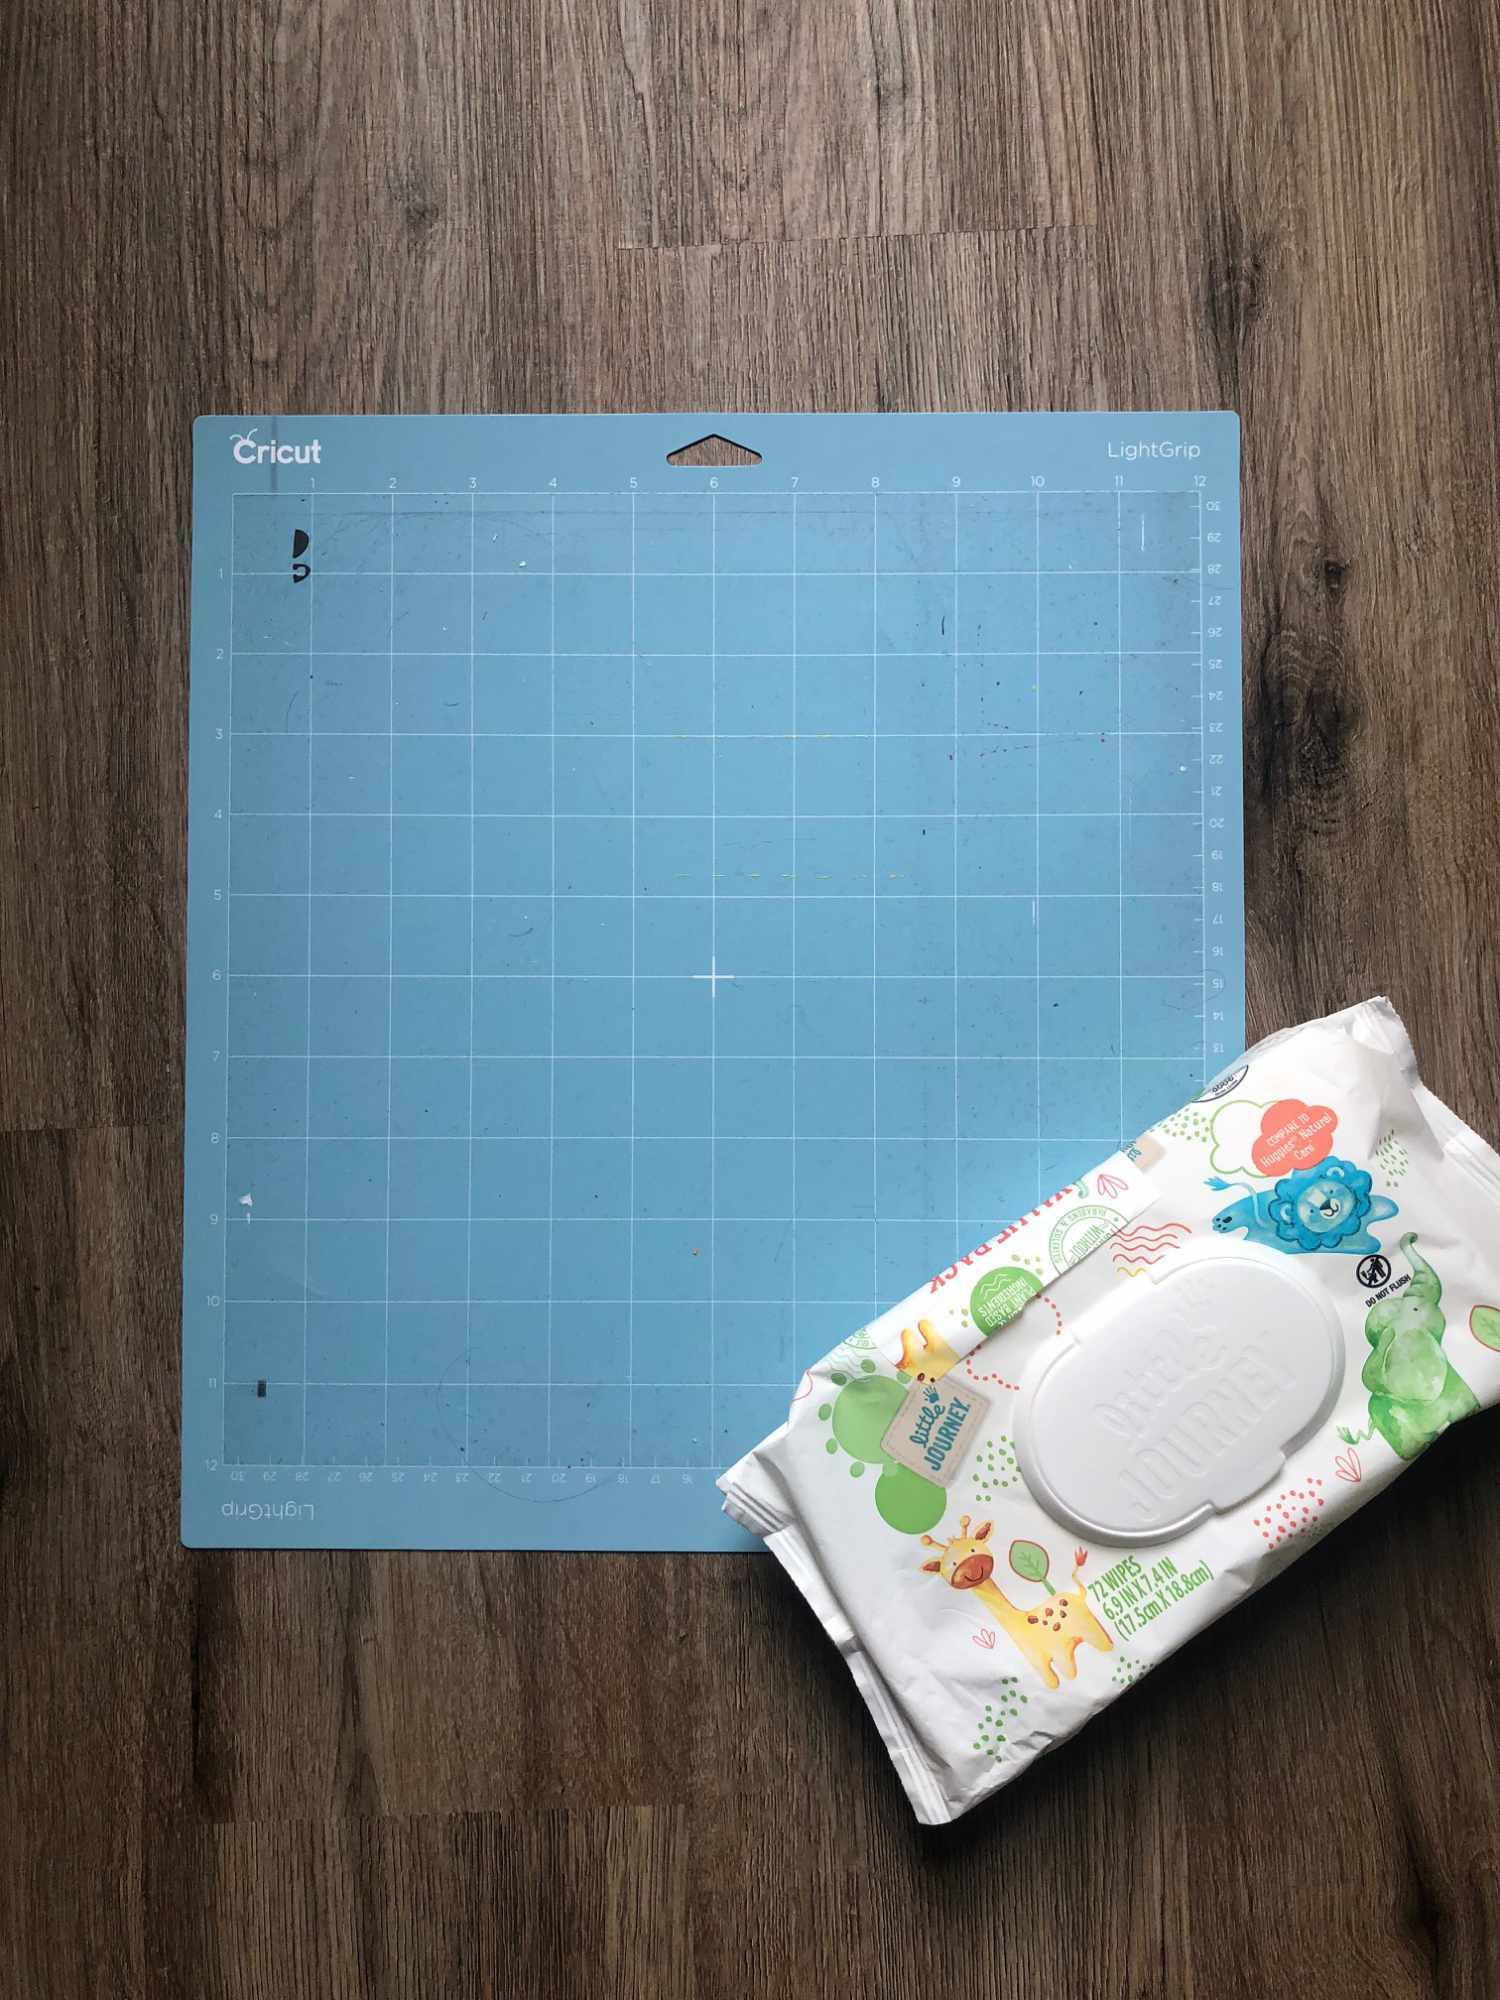 Cricut Tools, Hacks & More: The Ultimate Cheat Sheet for Crafters 7